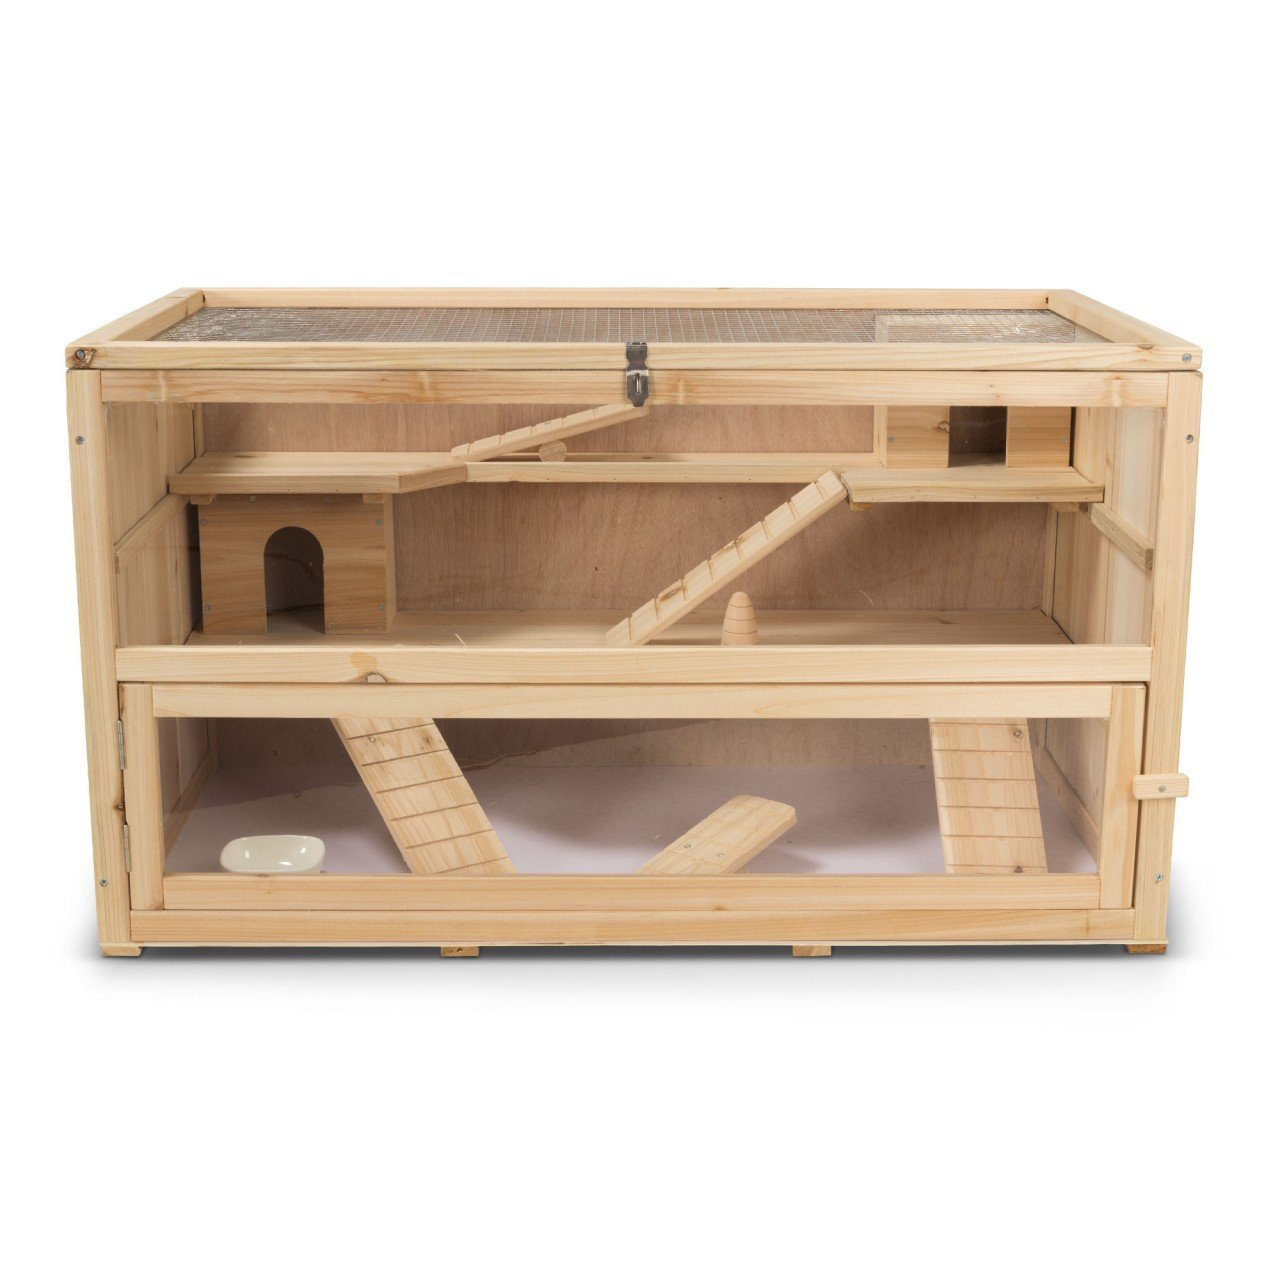 Timbo Cage Petits Animaux e74d95f6162